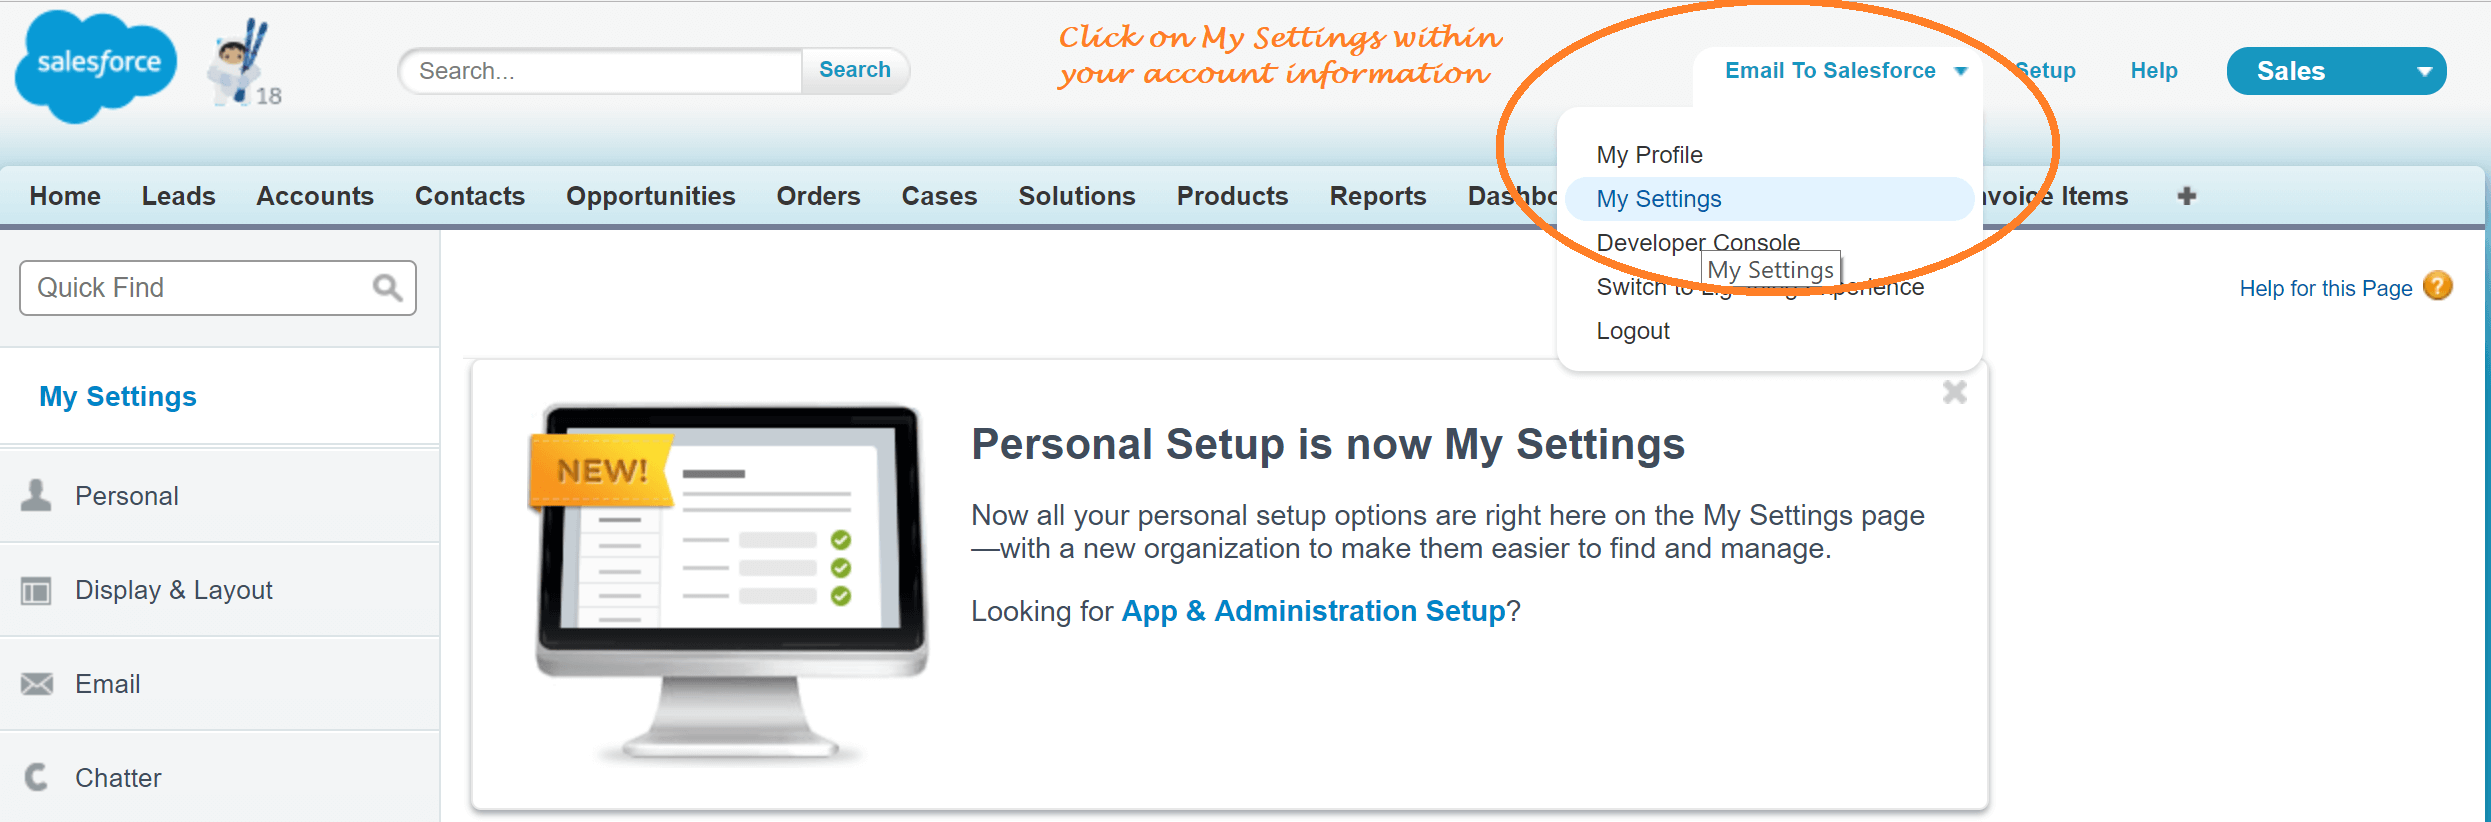 How to find email To salesforce ID